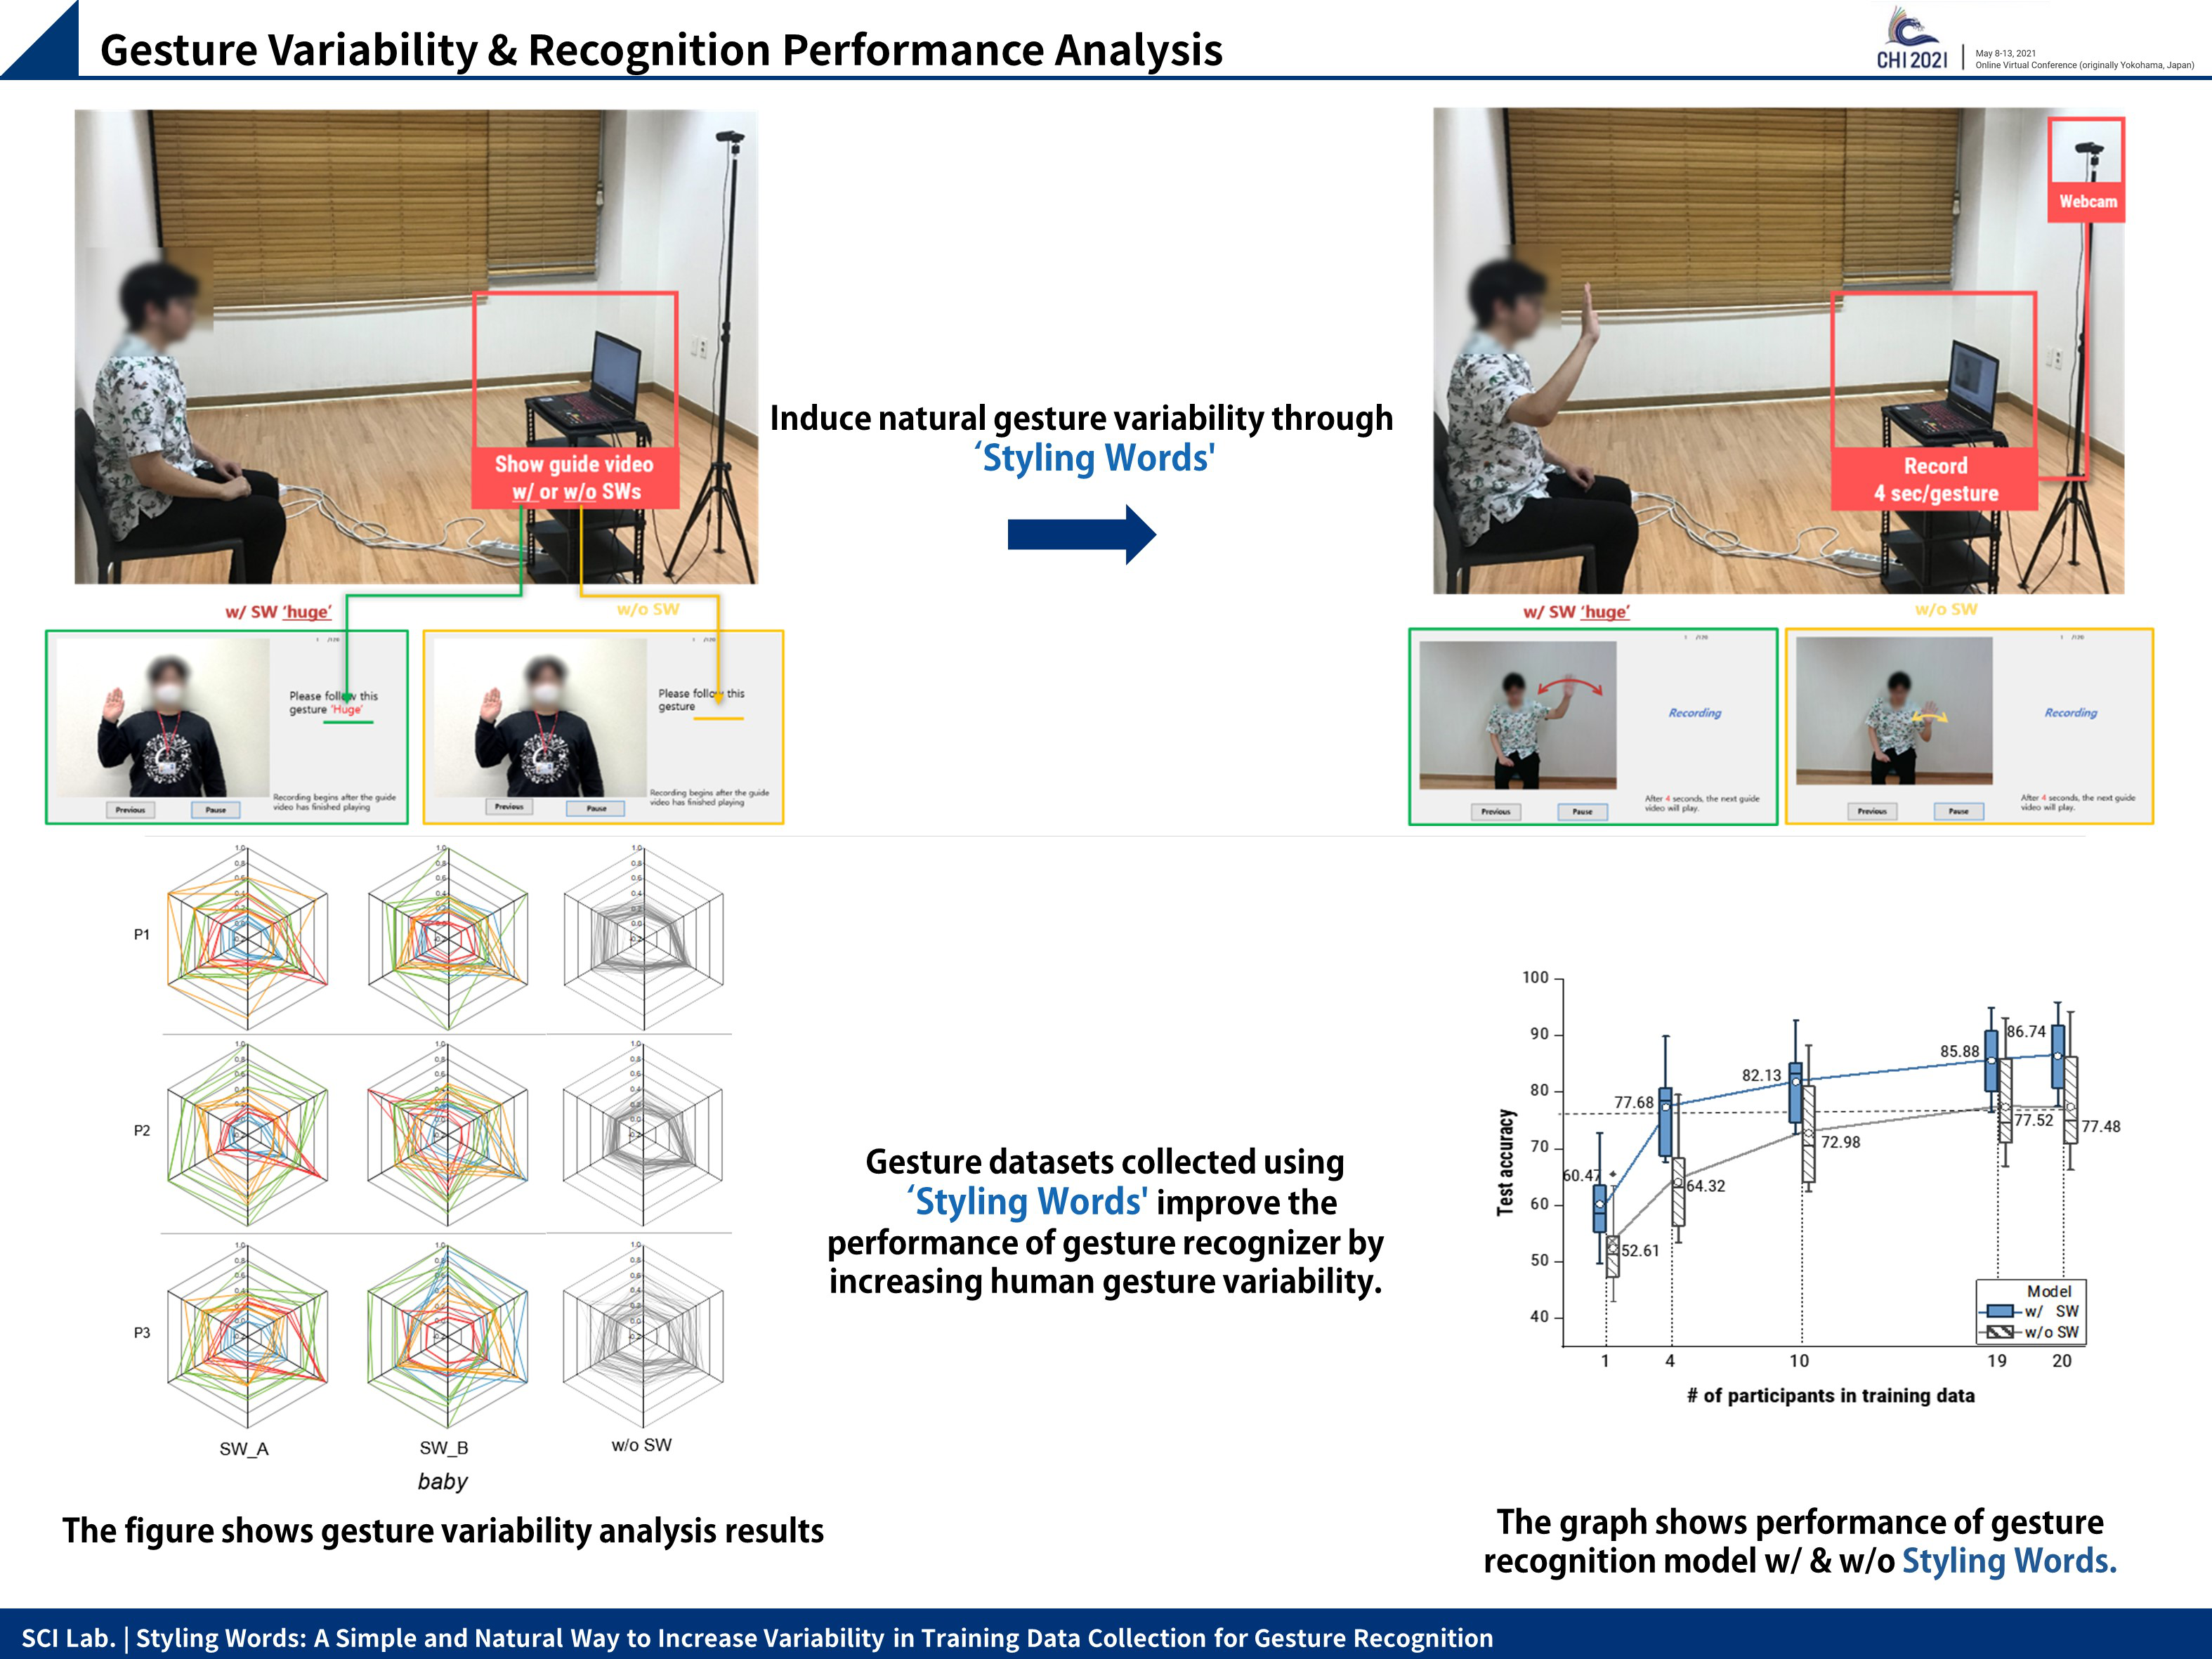 CHI'21, Styling Words: A Simple and Natural Way to Increase Variability in Training Data Collection for Gesture Recognition 이미지